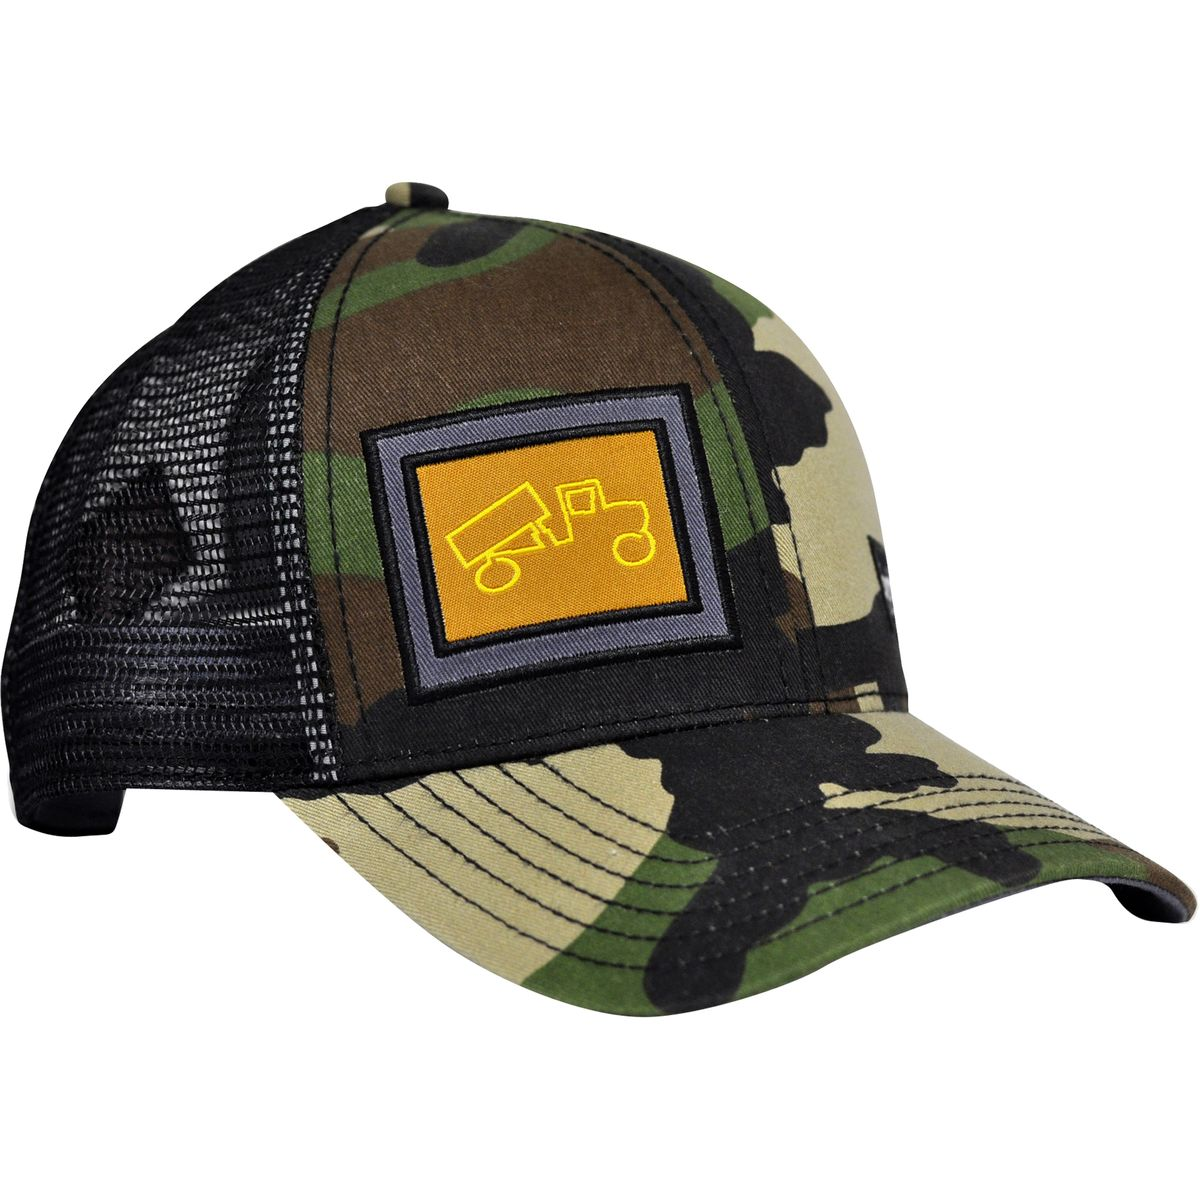 Bigtruck Brand Classic Trucker Hat Camo Black One Size